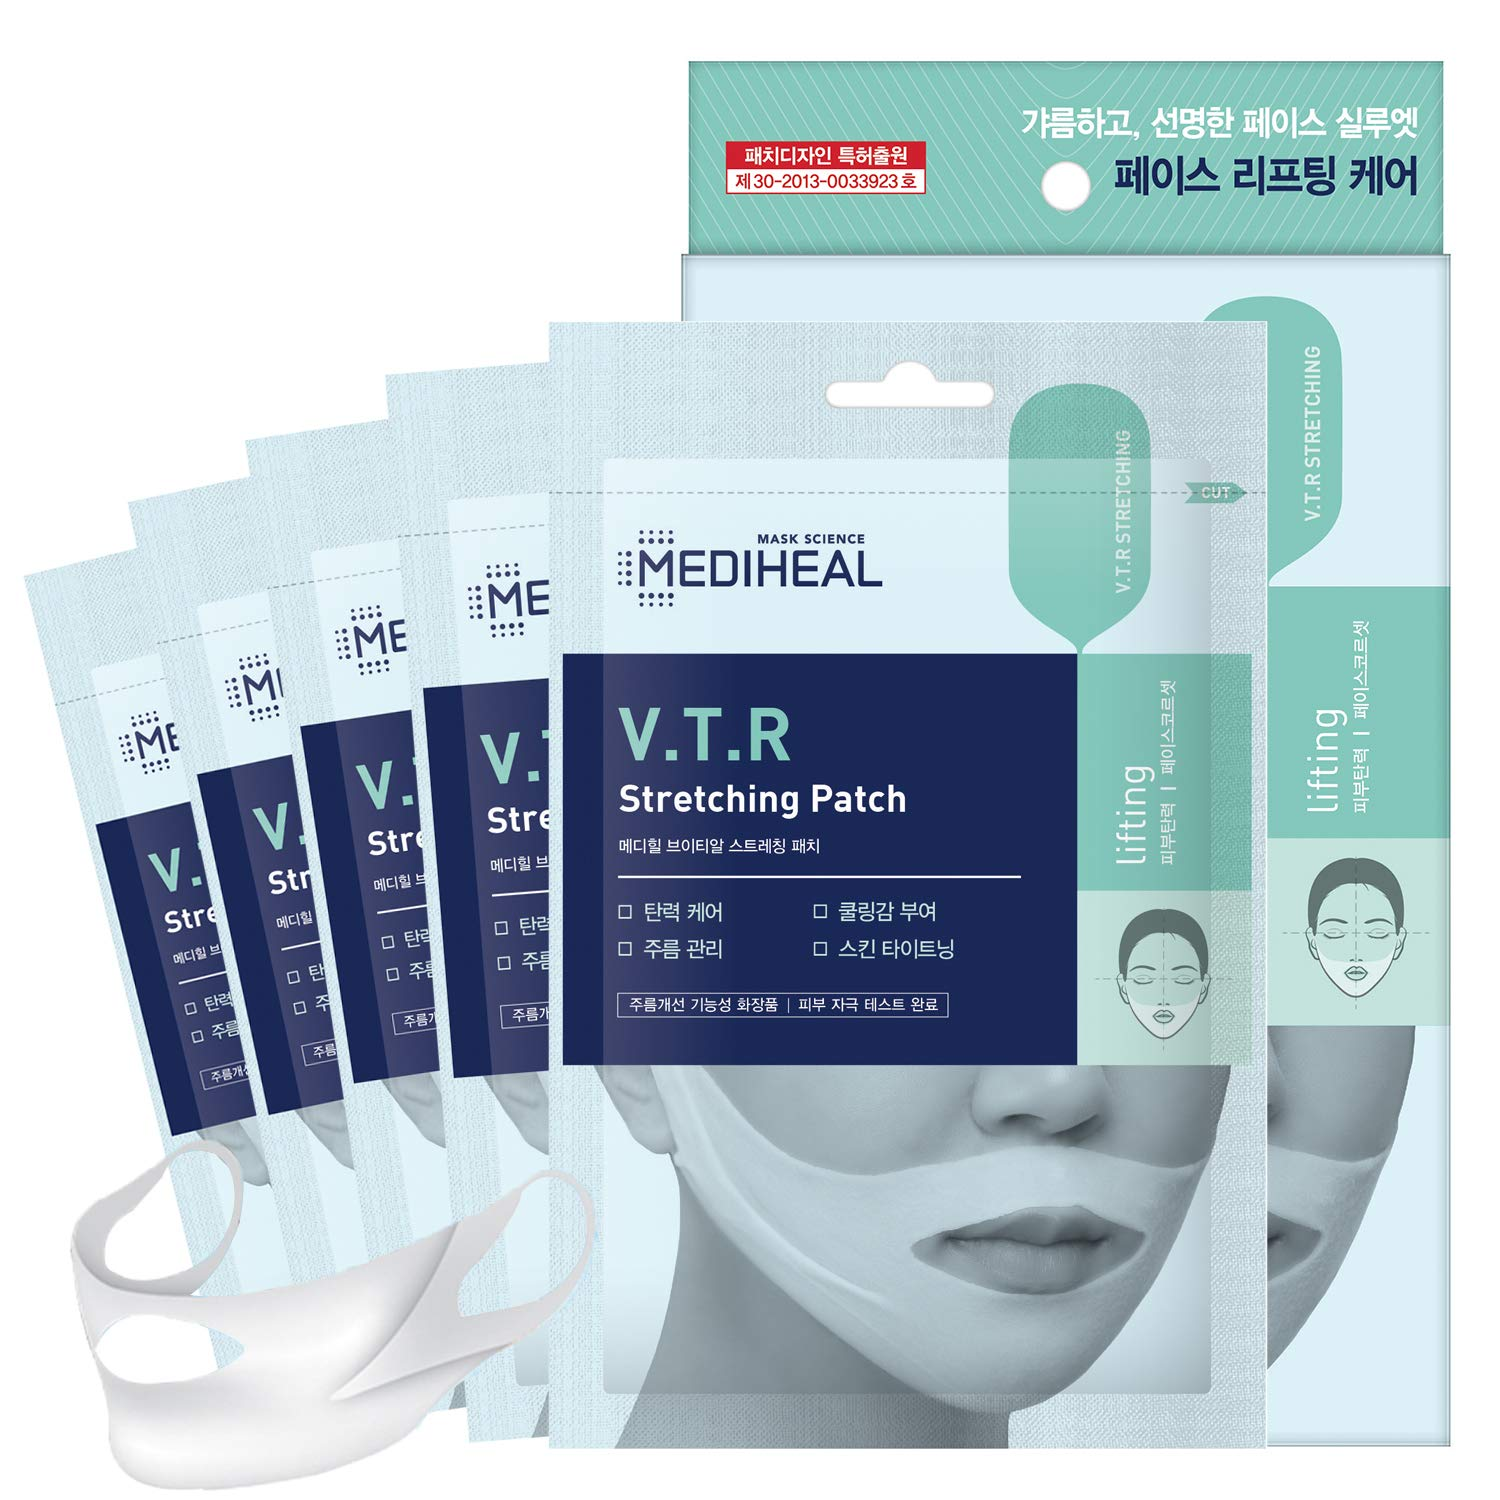 MEDIHEAL V.T.R Stretching Patch 1 pack (4pcs) - High Adhesive Tension Intensive Face Lifting and Tightening Band Mask Sheet, Anti-Aging, Prevents Double Chin for Sagging Skin, Firming and Elasticity